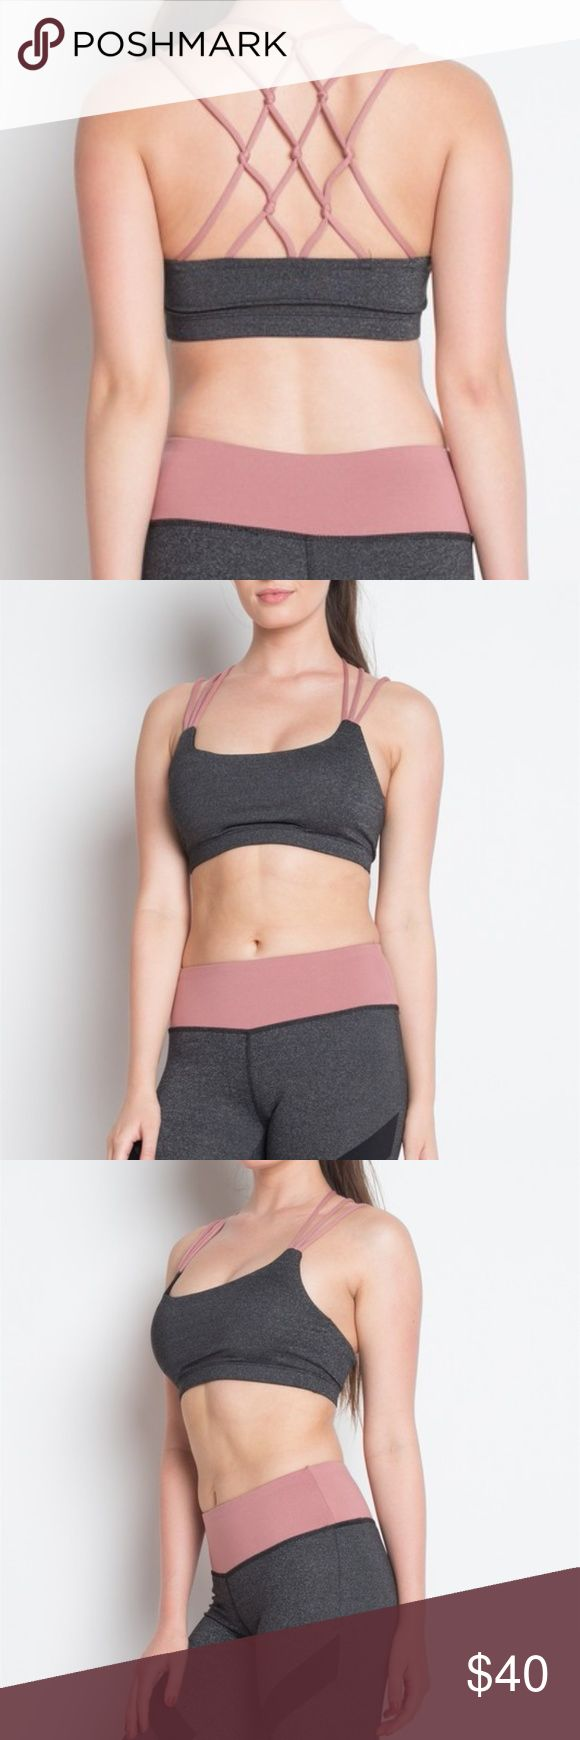 Strappy Pink & Grey Sports Bra Item info // + great strappy sports bra + removable padded cups + matching leggings available in another listing + measurements available upon request + new, boutique item, with tags  Closet info // + bundles 10% off + offers welcome Style Cash or Credit Intimates & Sleepwear Bras